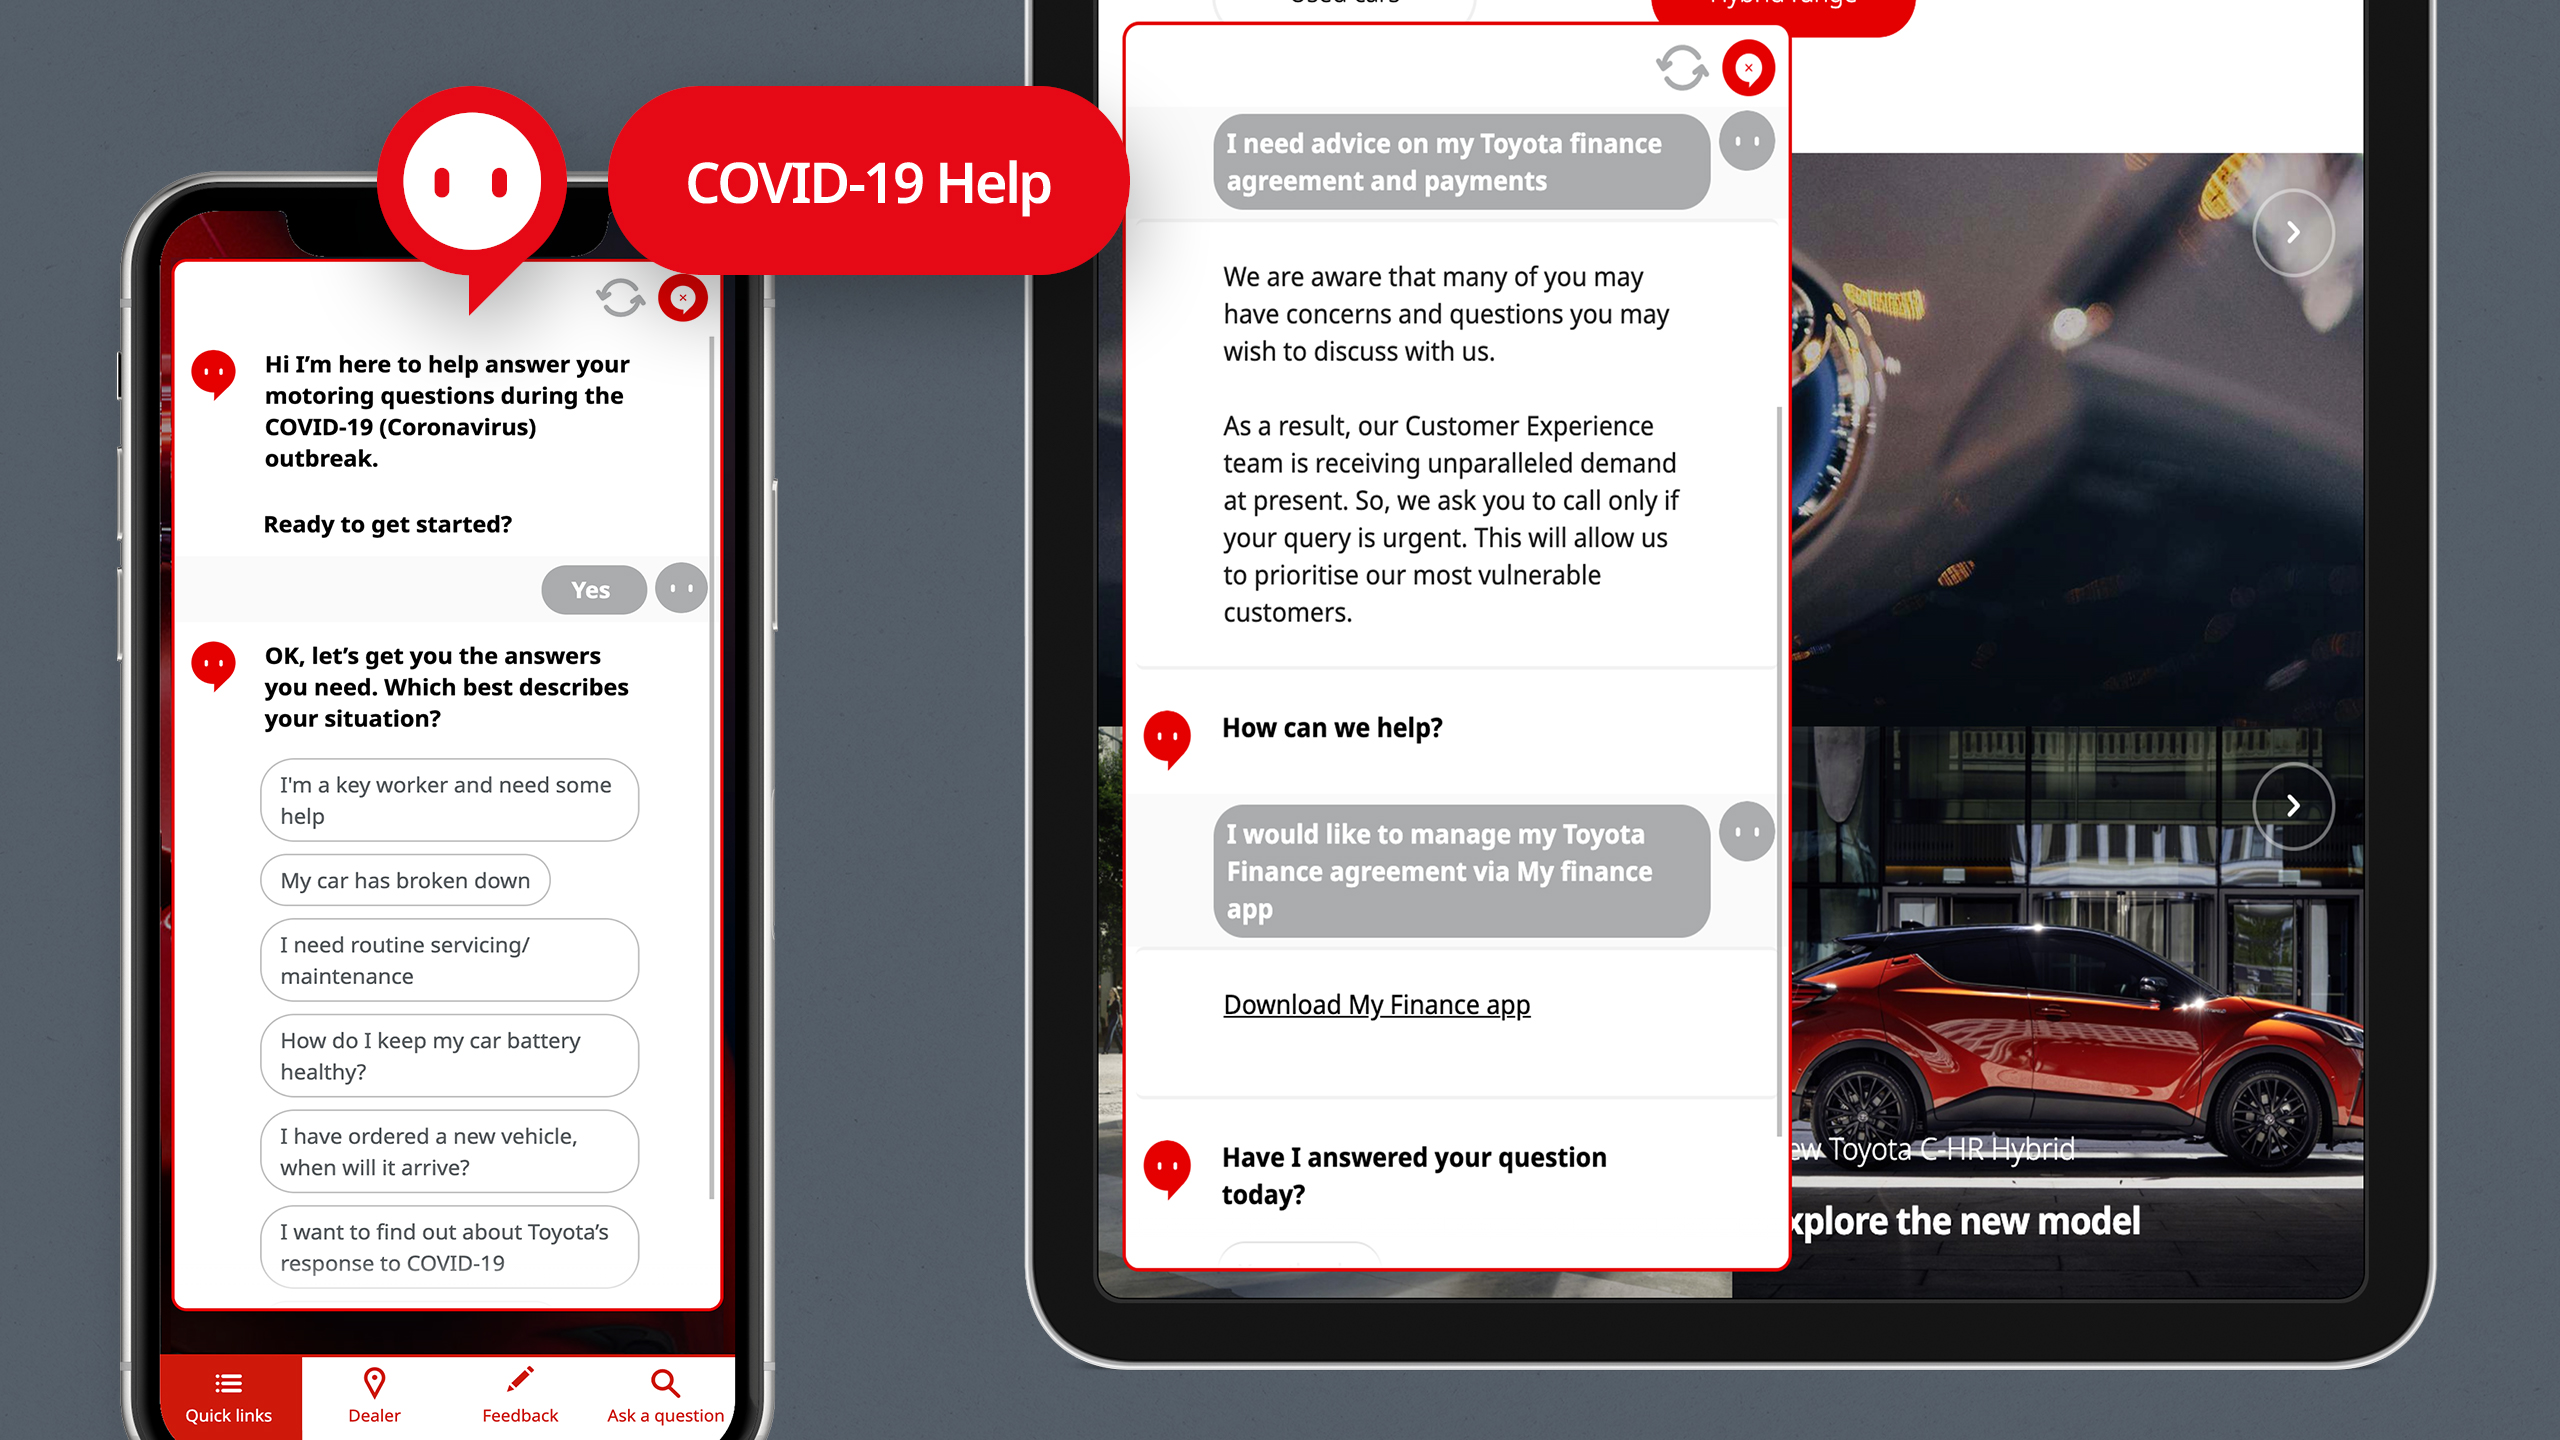 Toyota chatbot screens